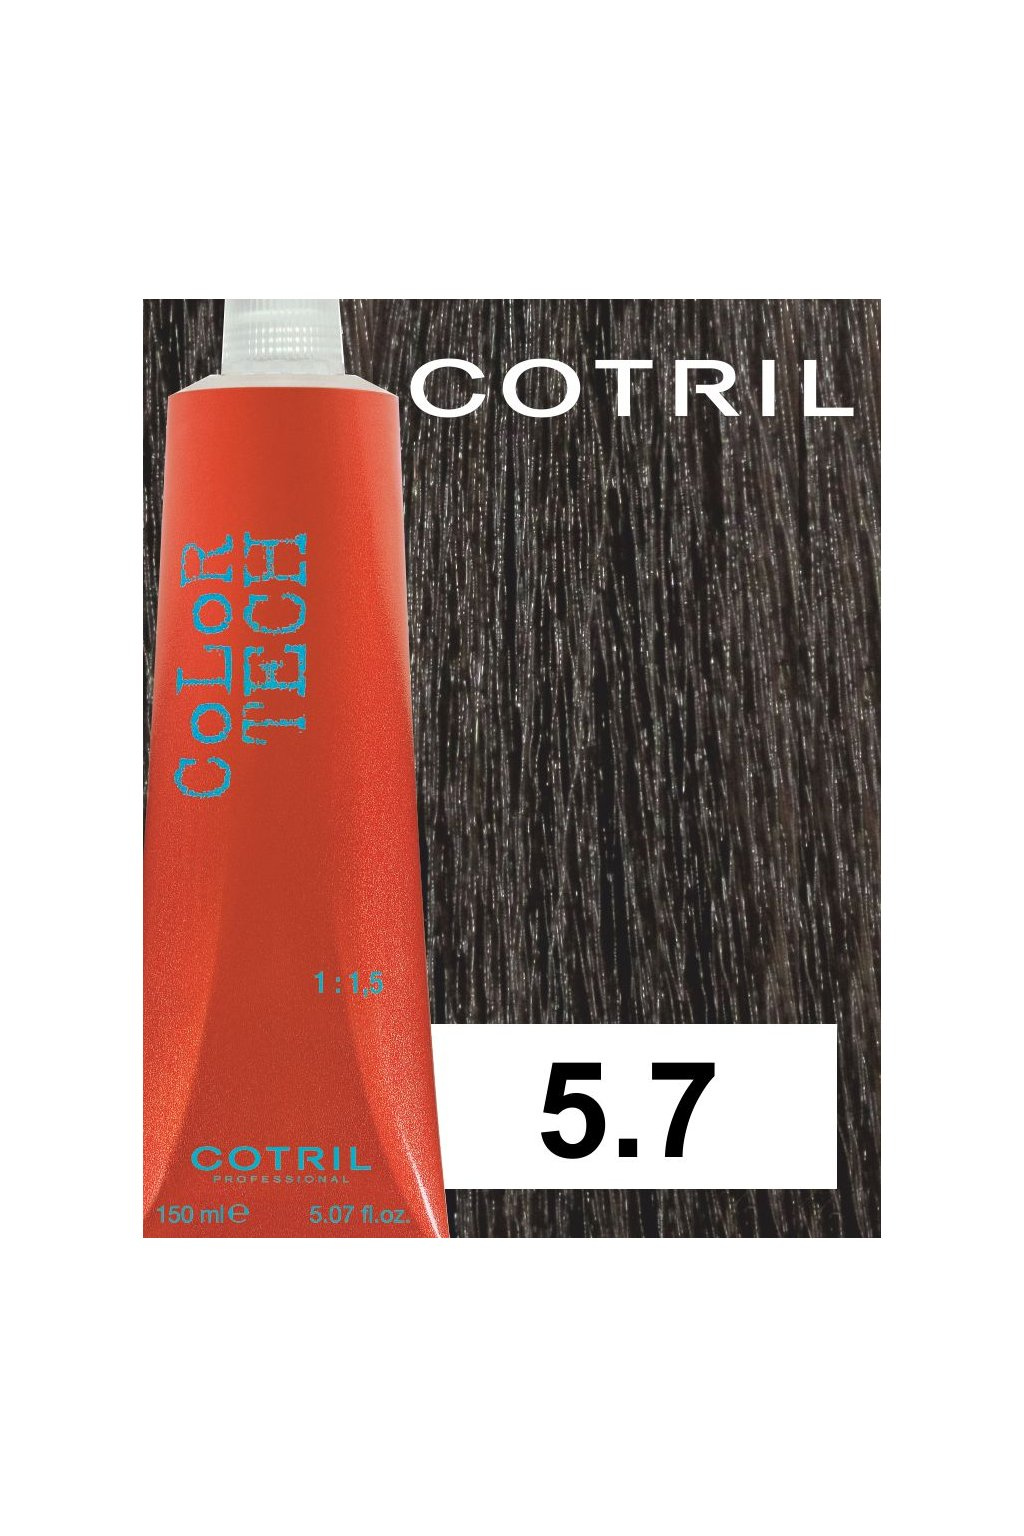 5 7 ct cotril